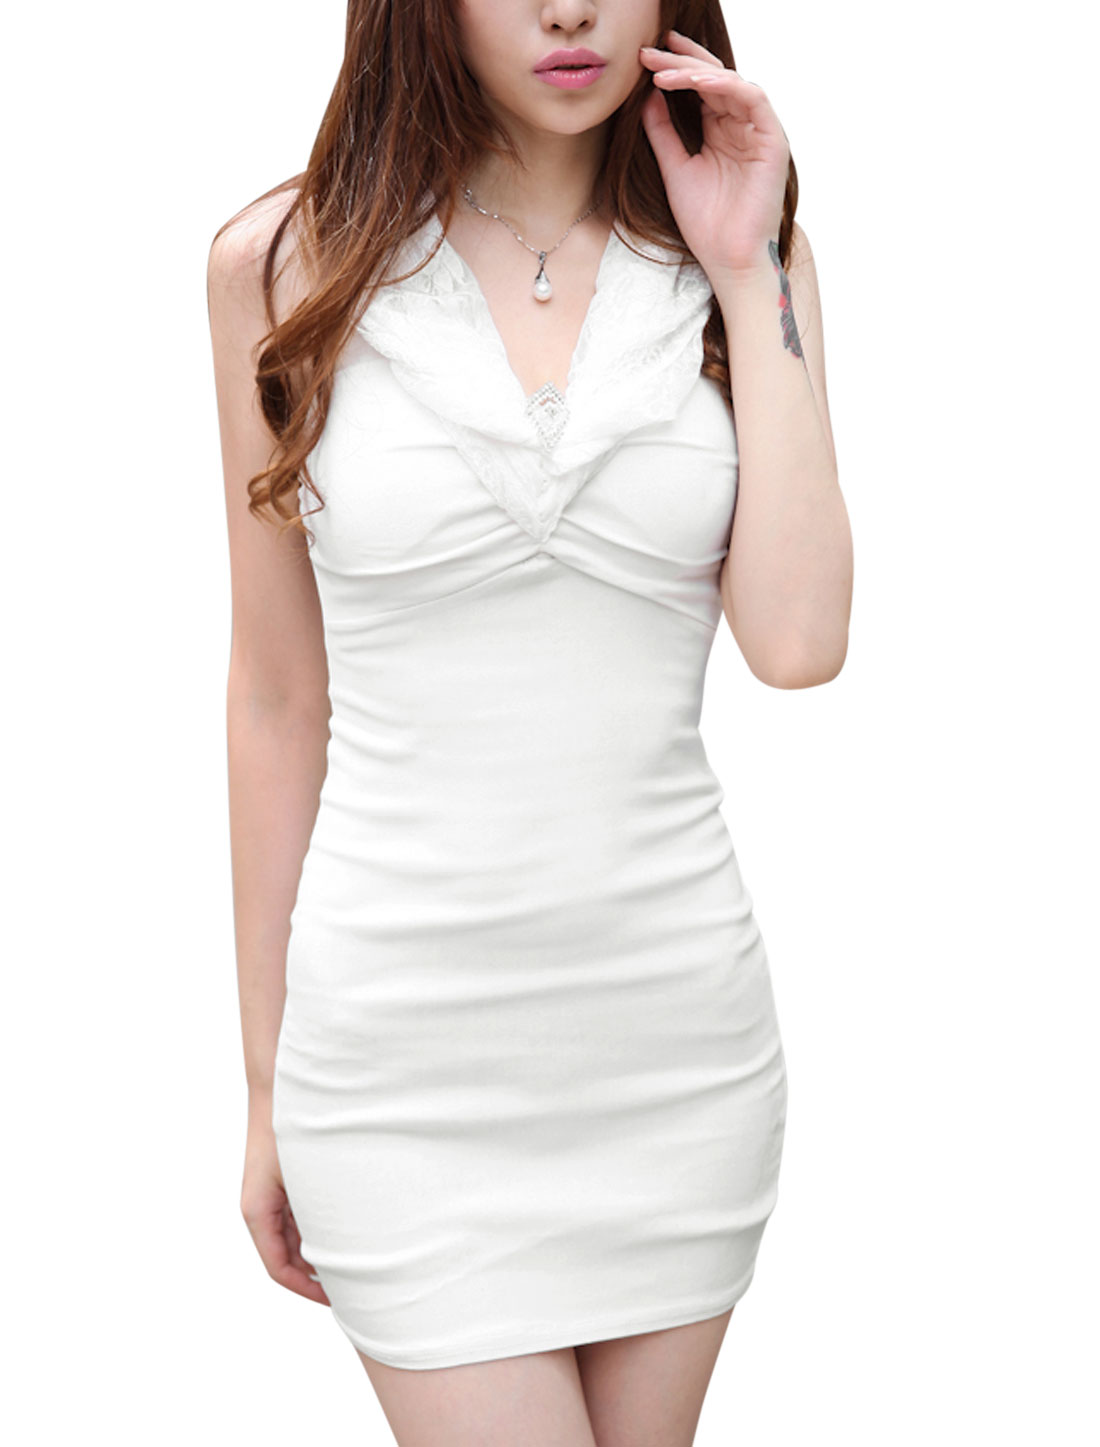 Women Multi Ways Wearing Lace Decor V Neckline Sexy Sheath Dress White XS